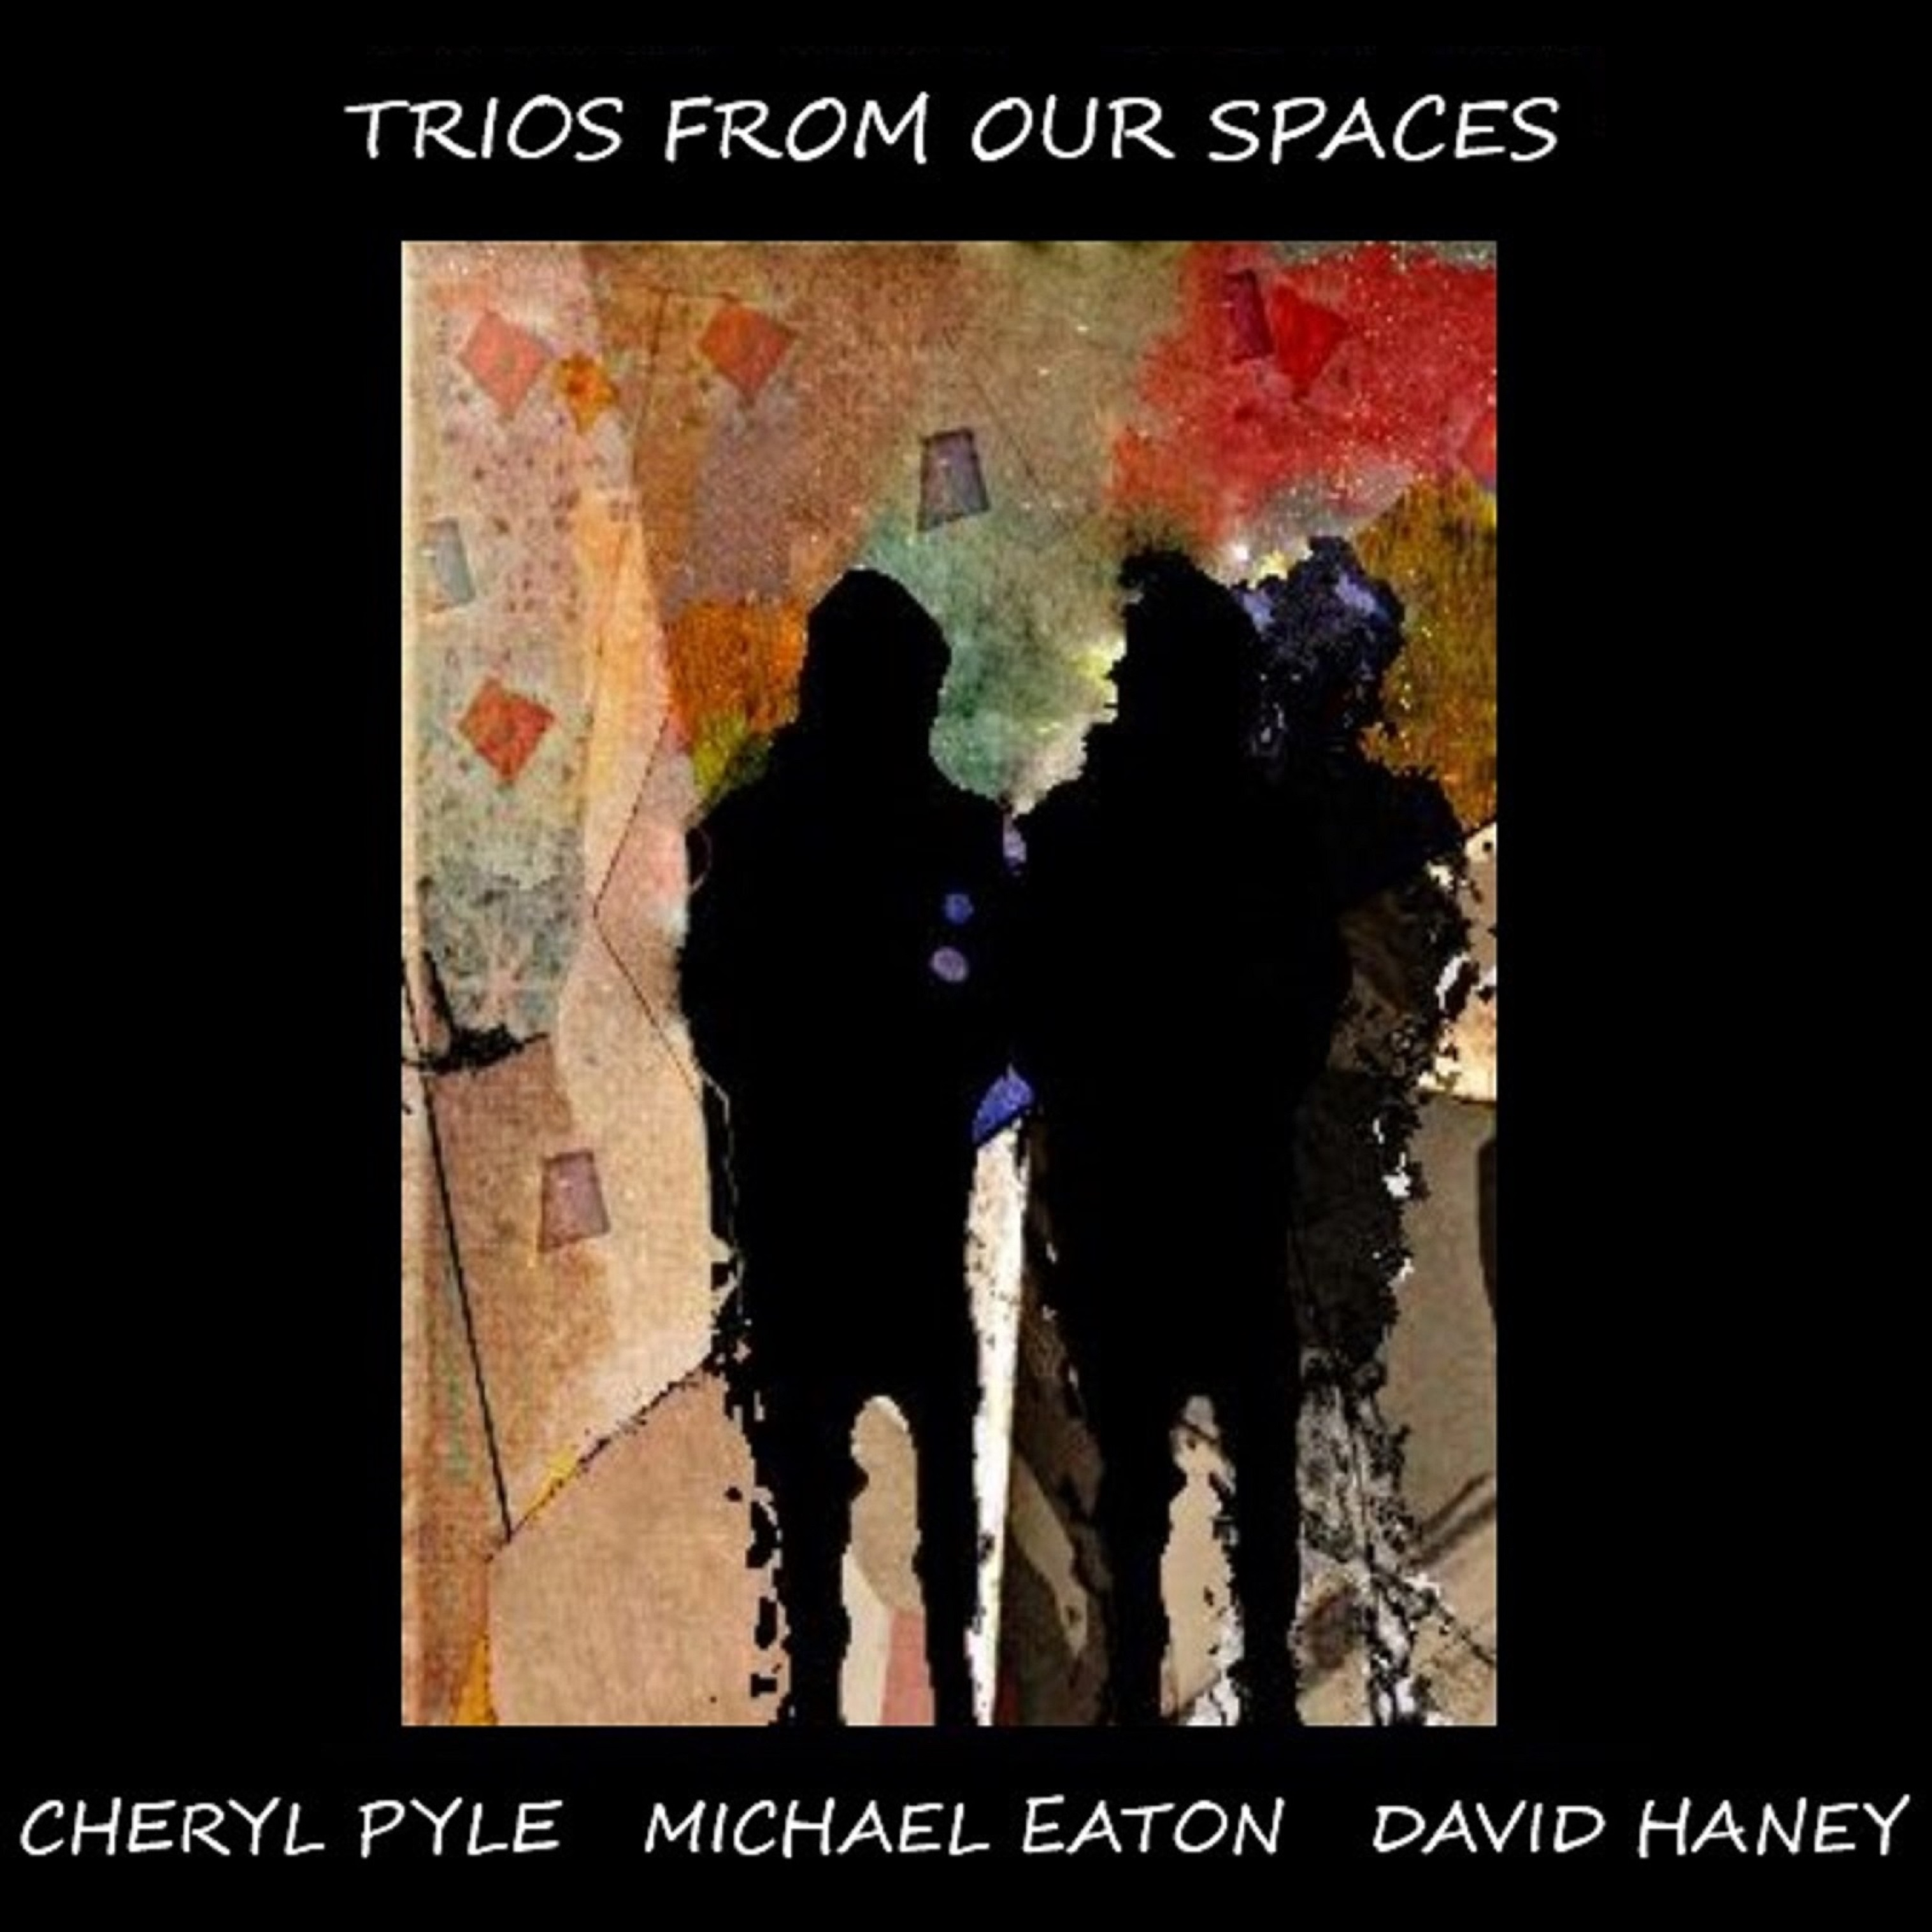 Trios from our Spaces - Cheryl Pyle , Michael Eaton, David Haney